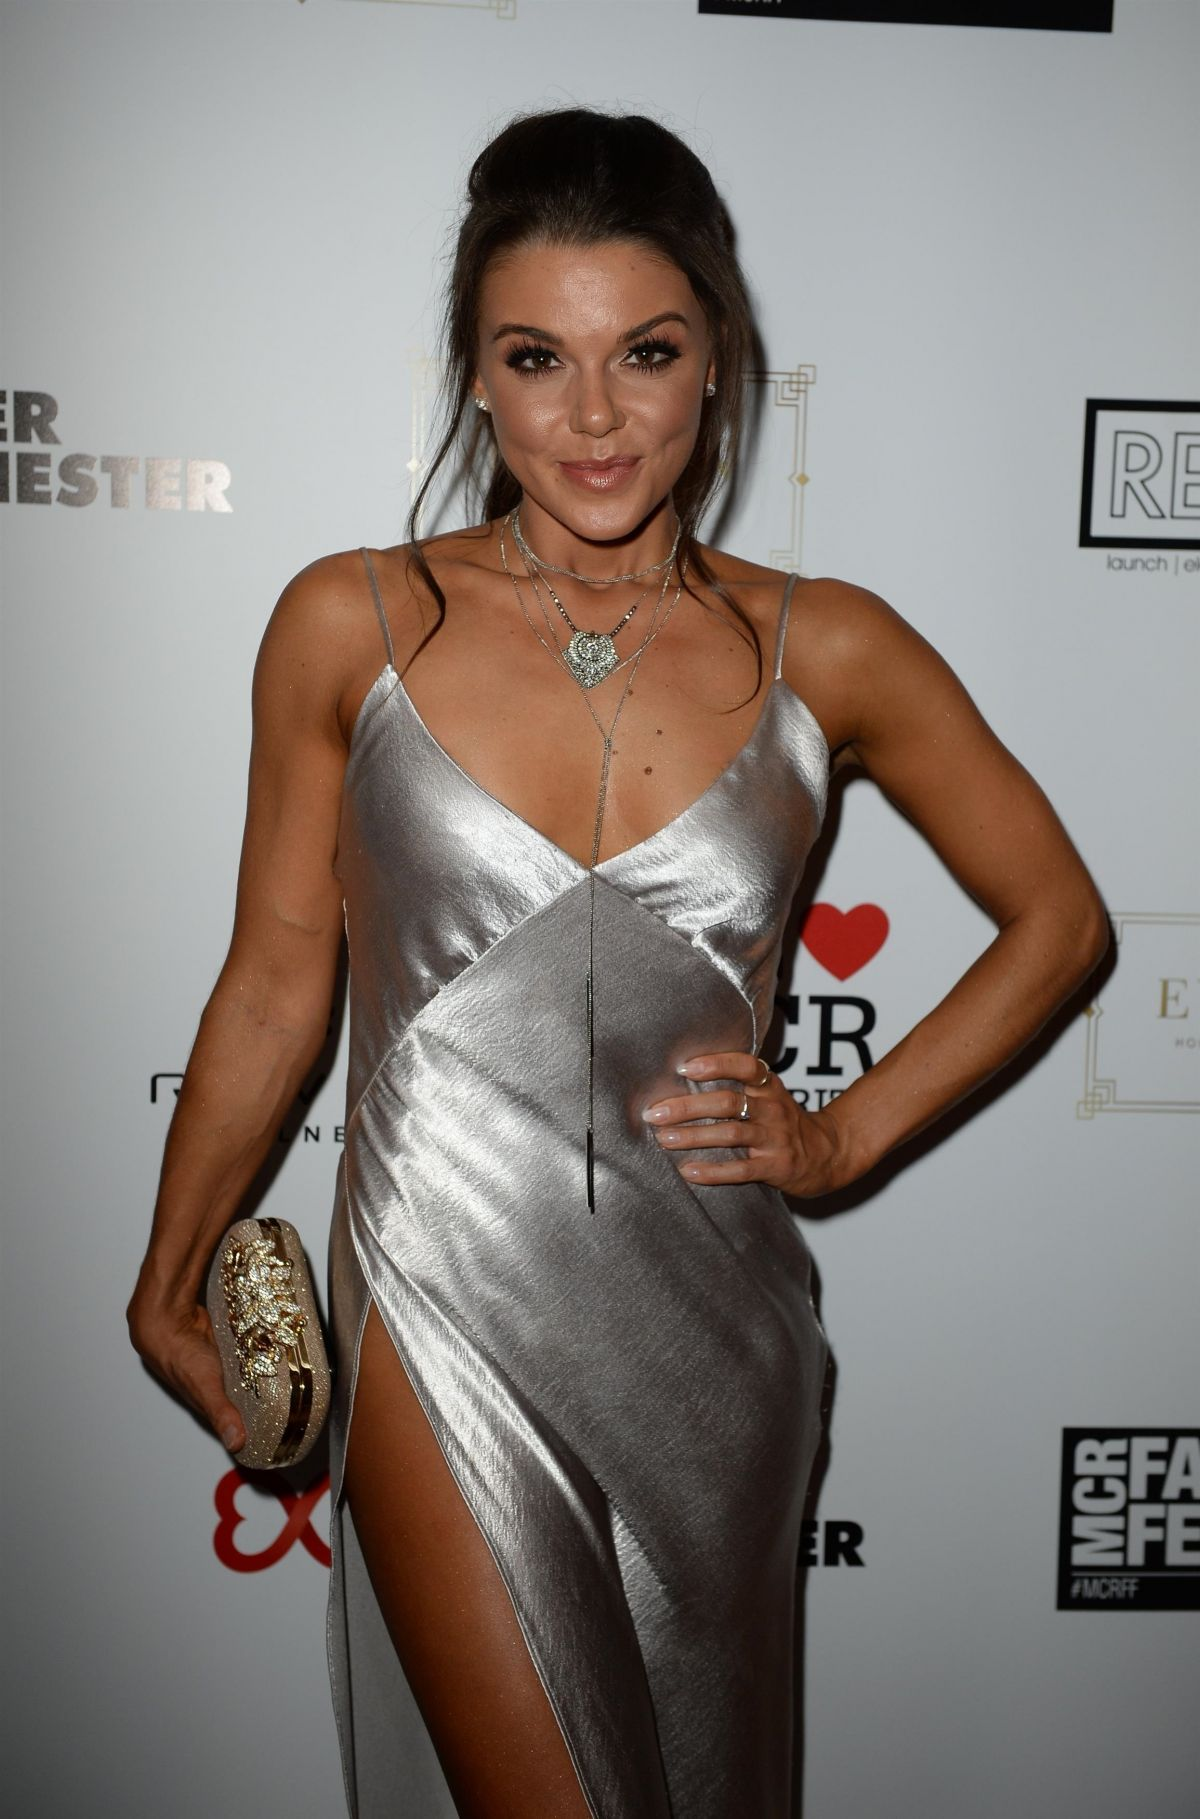 cleavage Images Faye Brookes naked photo 2017